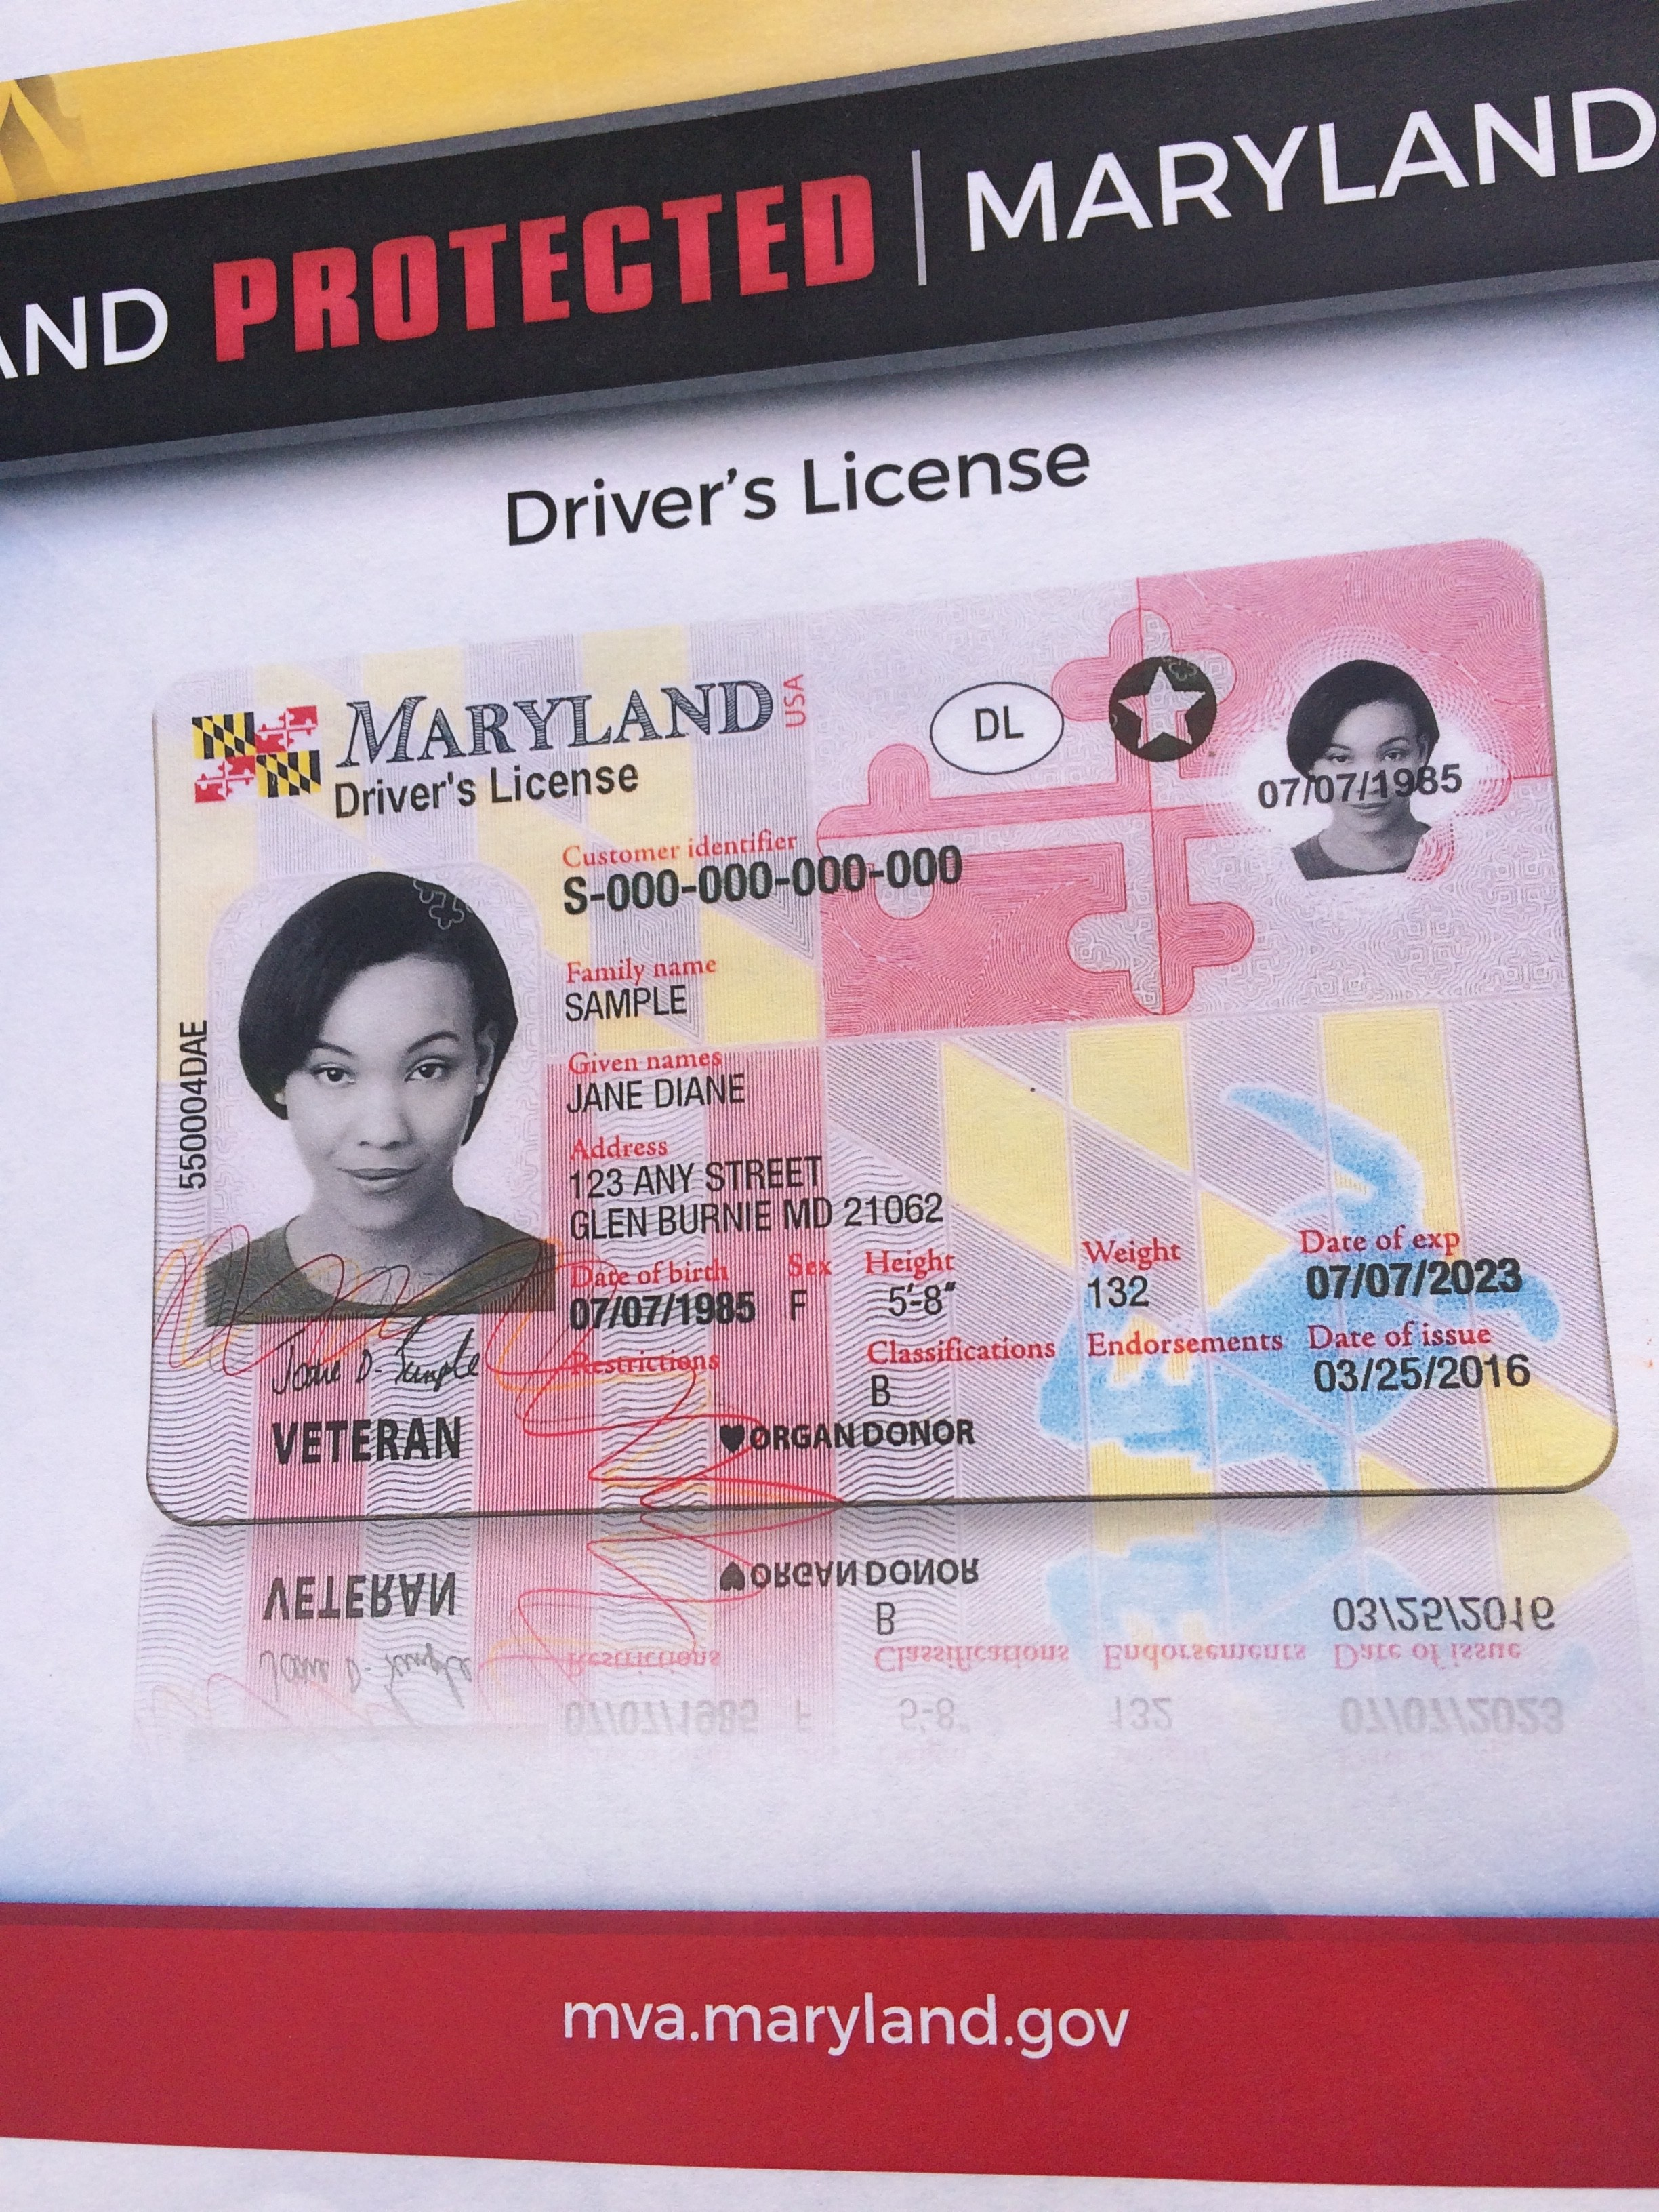 Maryland officials unveil new driver's license